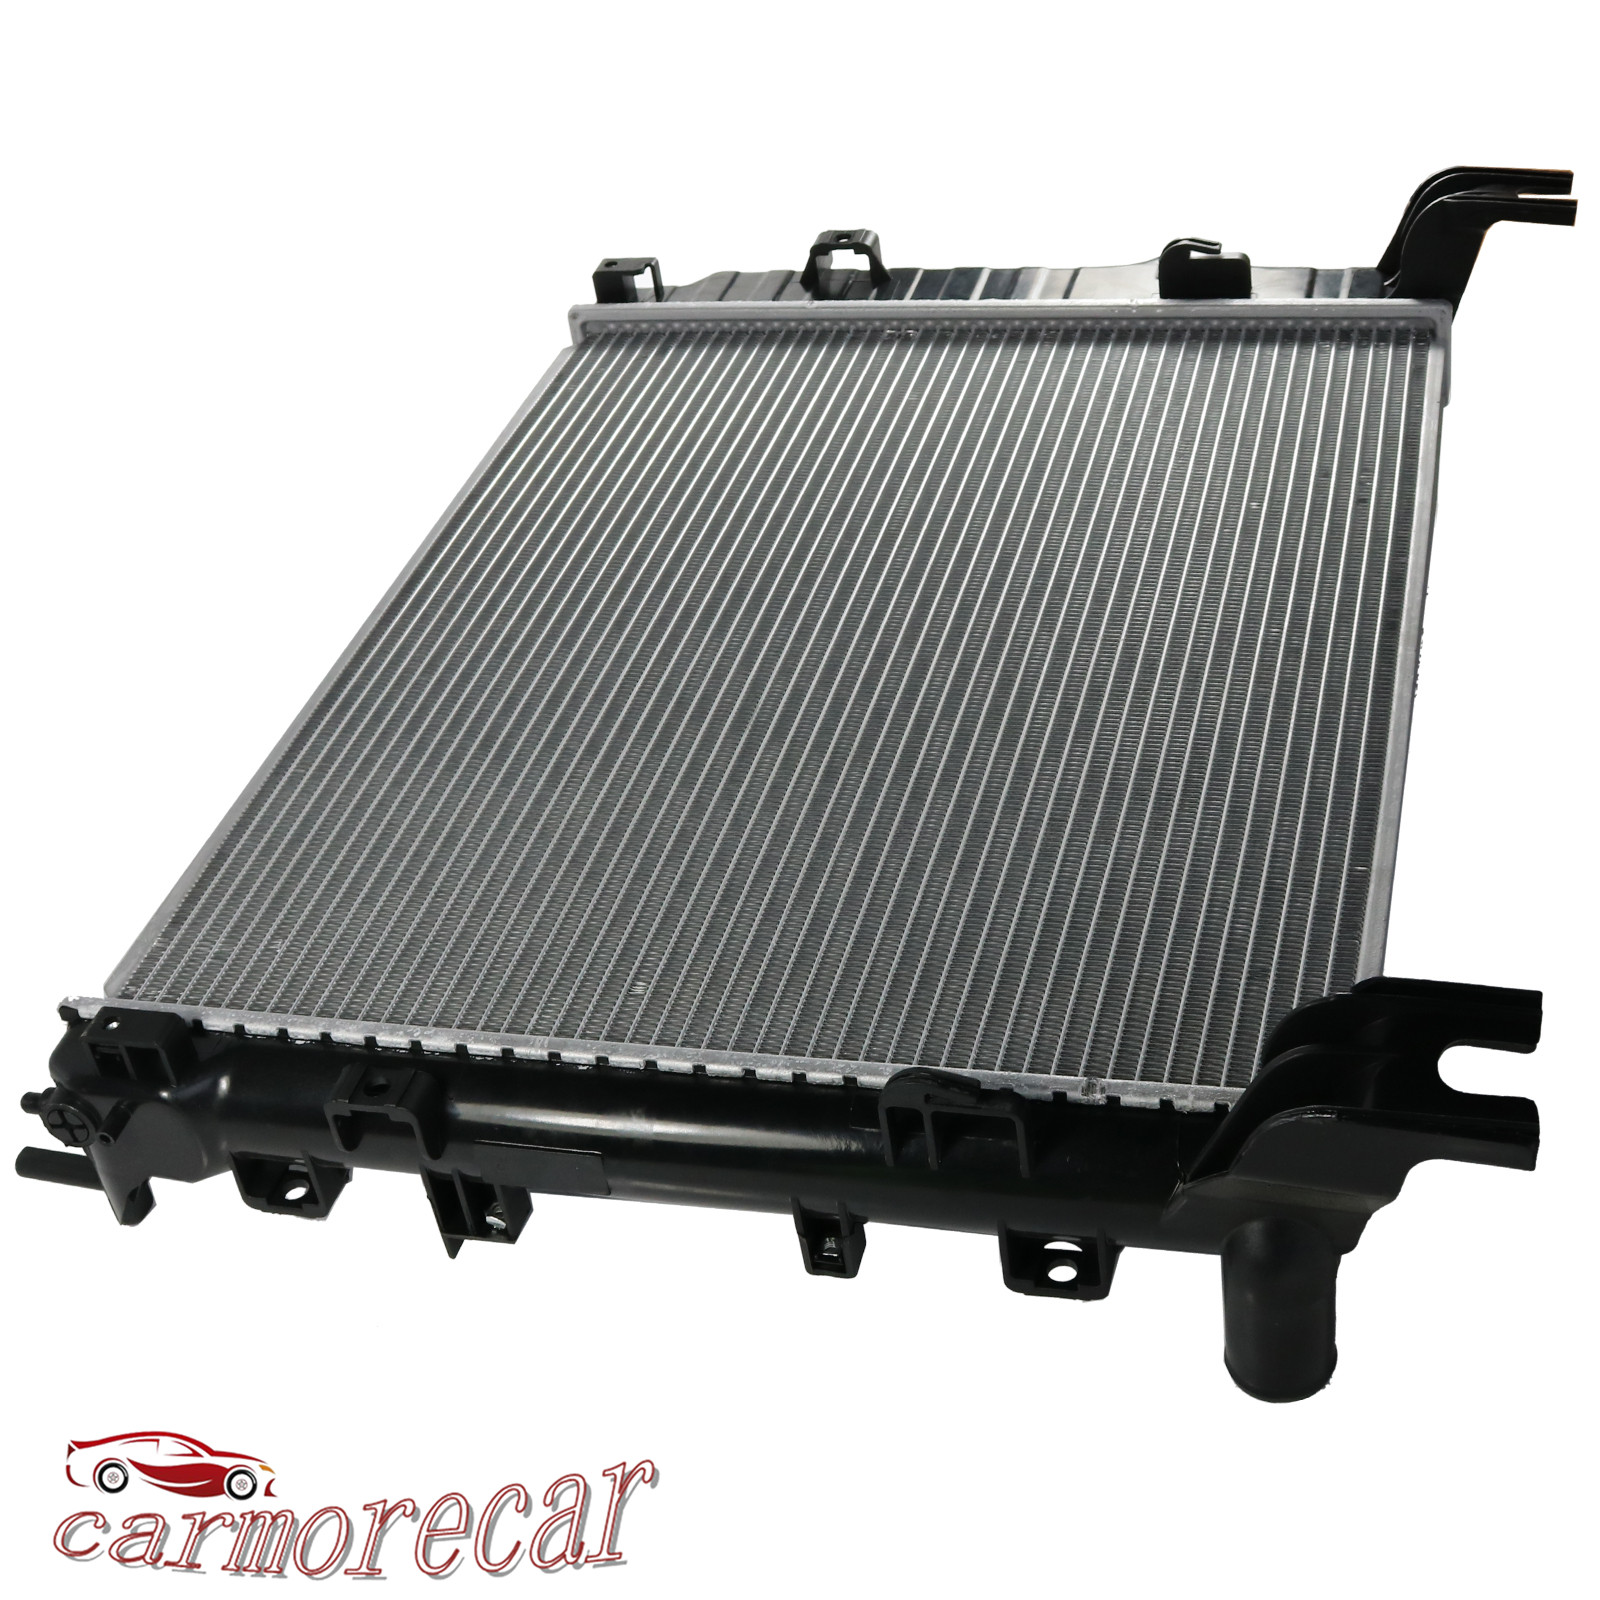 Radiator for Dodge Dakota Pickup Durango 2.5L 3.9L 4.7L 5.2L 5.9L Fits CU2294